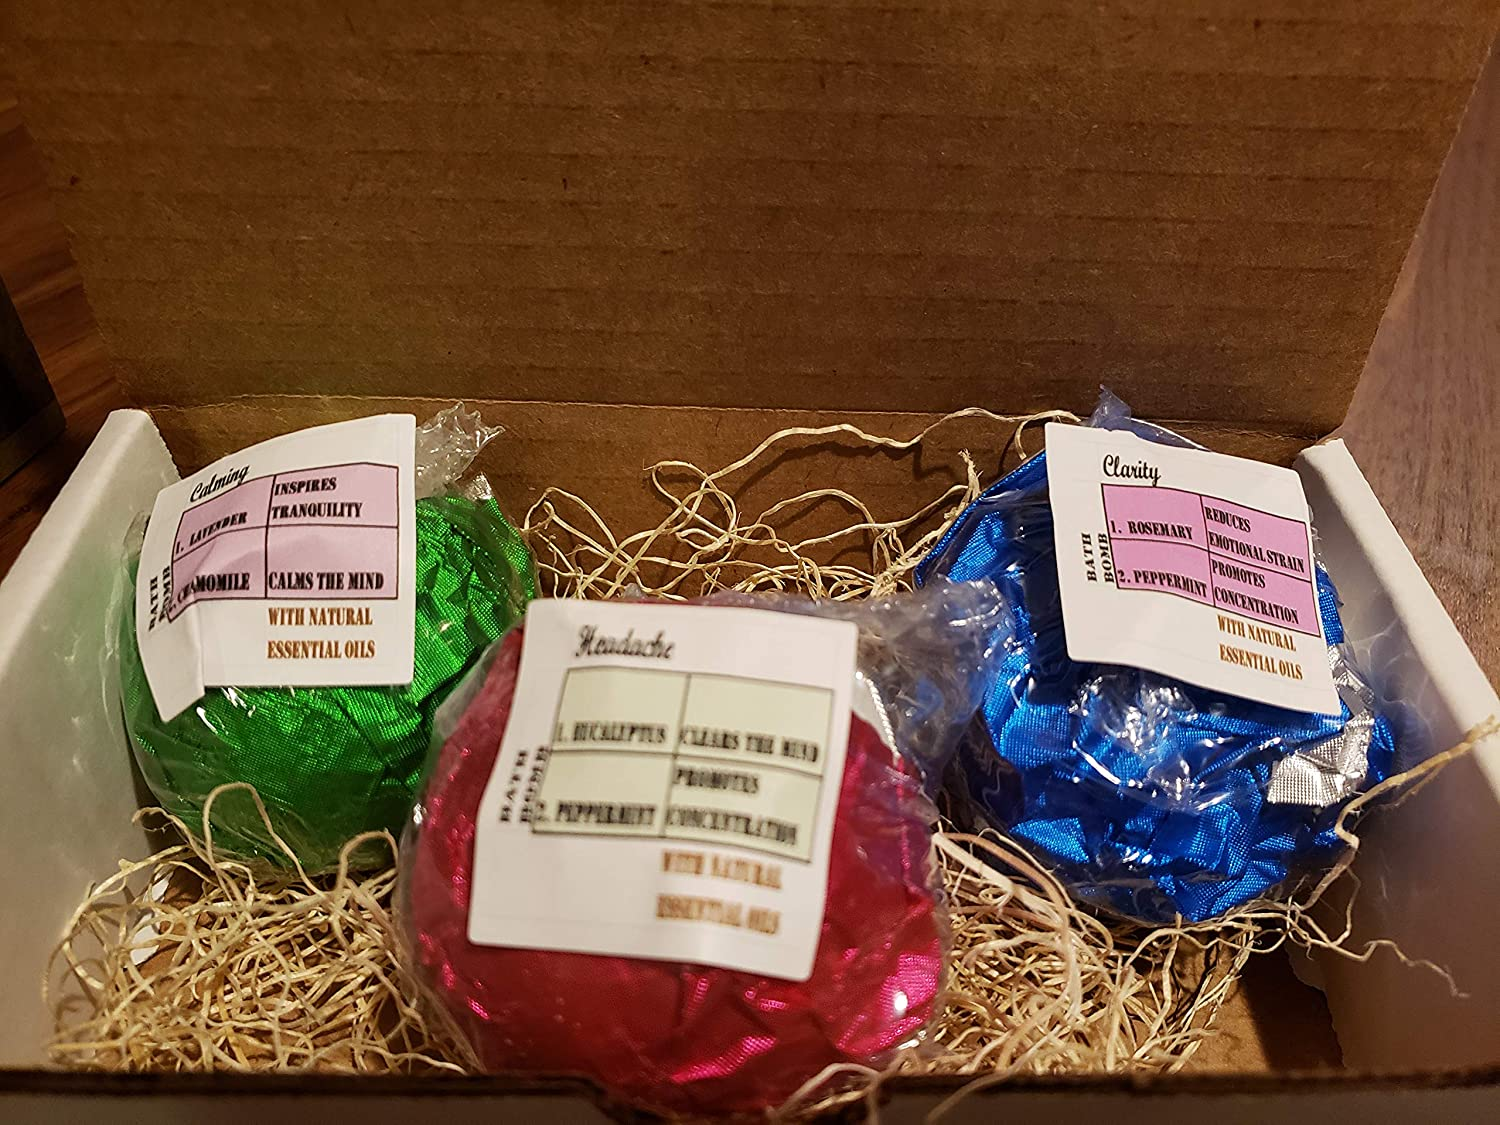 Set of 3 Bath Bombs in Bourbon Vanilla by Aromat and Max 61% OFF OFFicial shop with Pepper